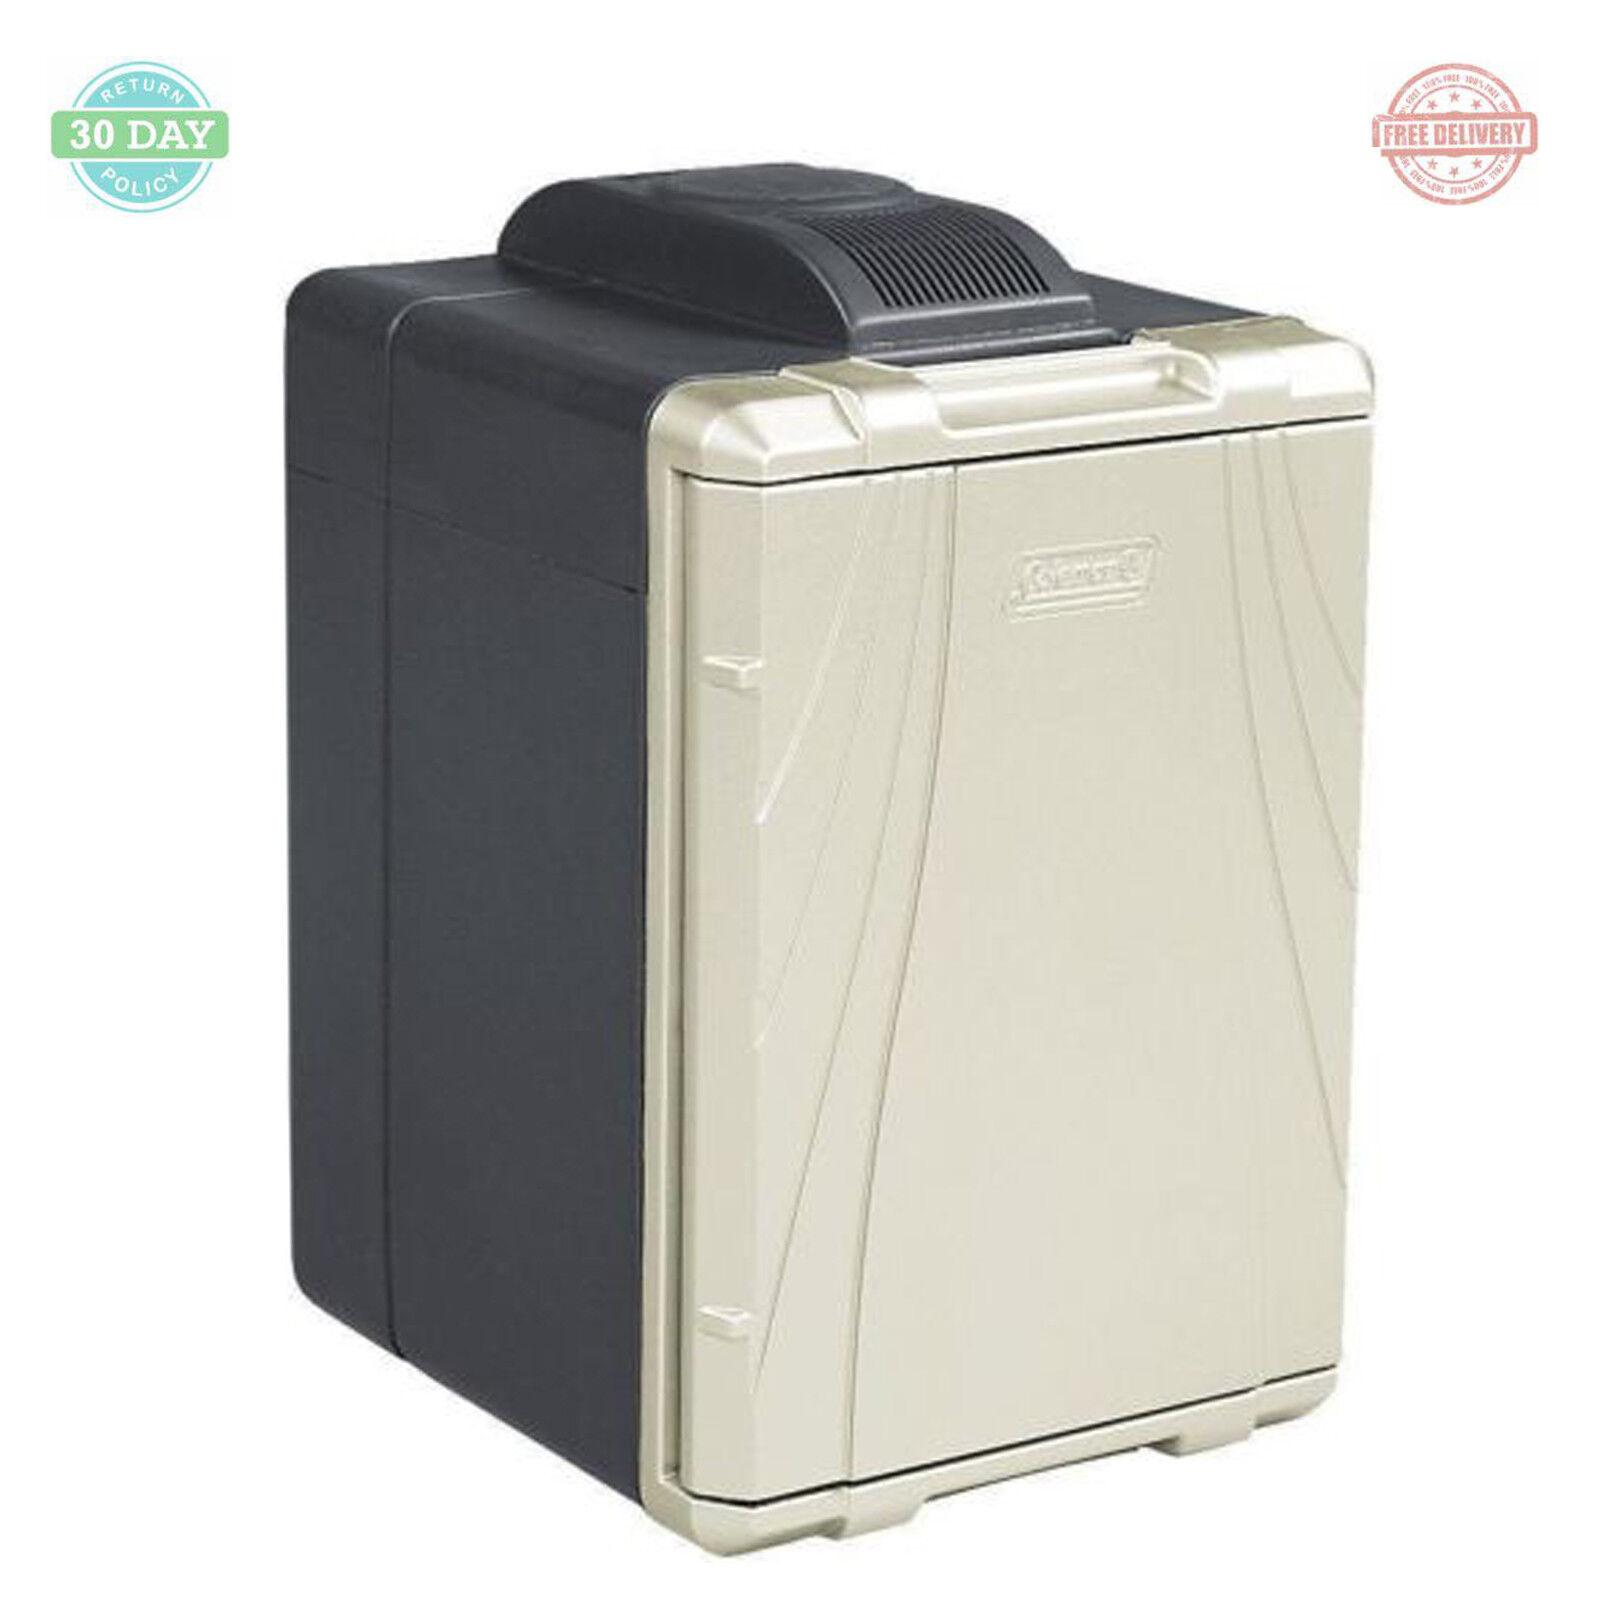 Chest Thermoelectric Iceless Cooler Food Drinks Portable Small Refrigerator 40Qt